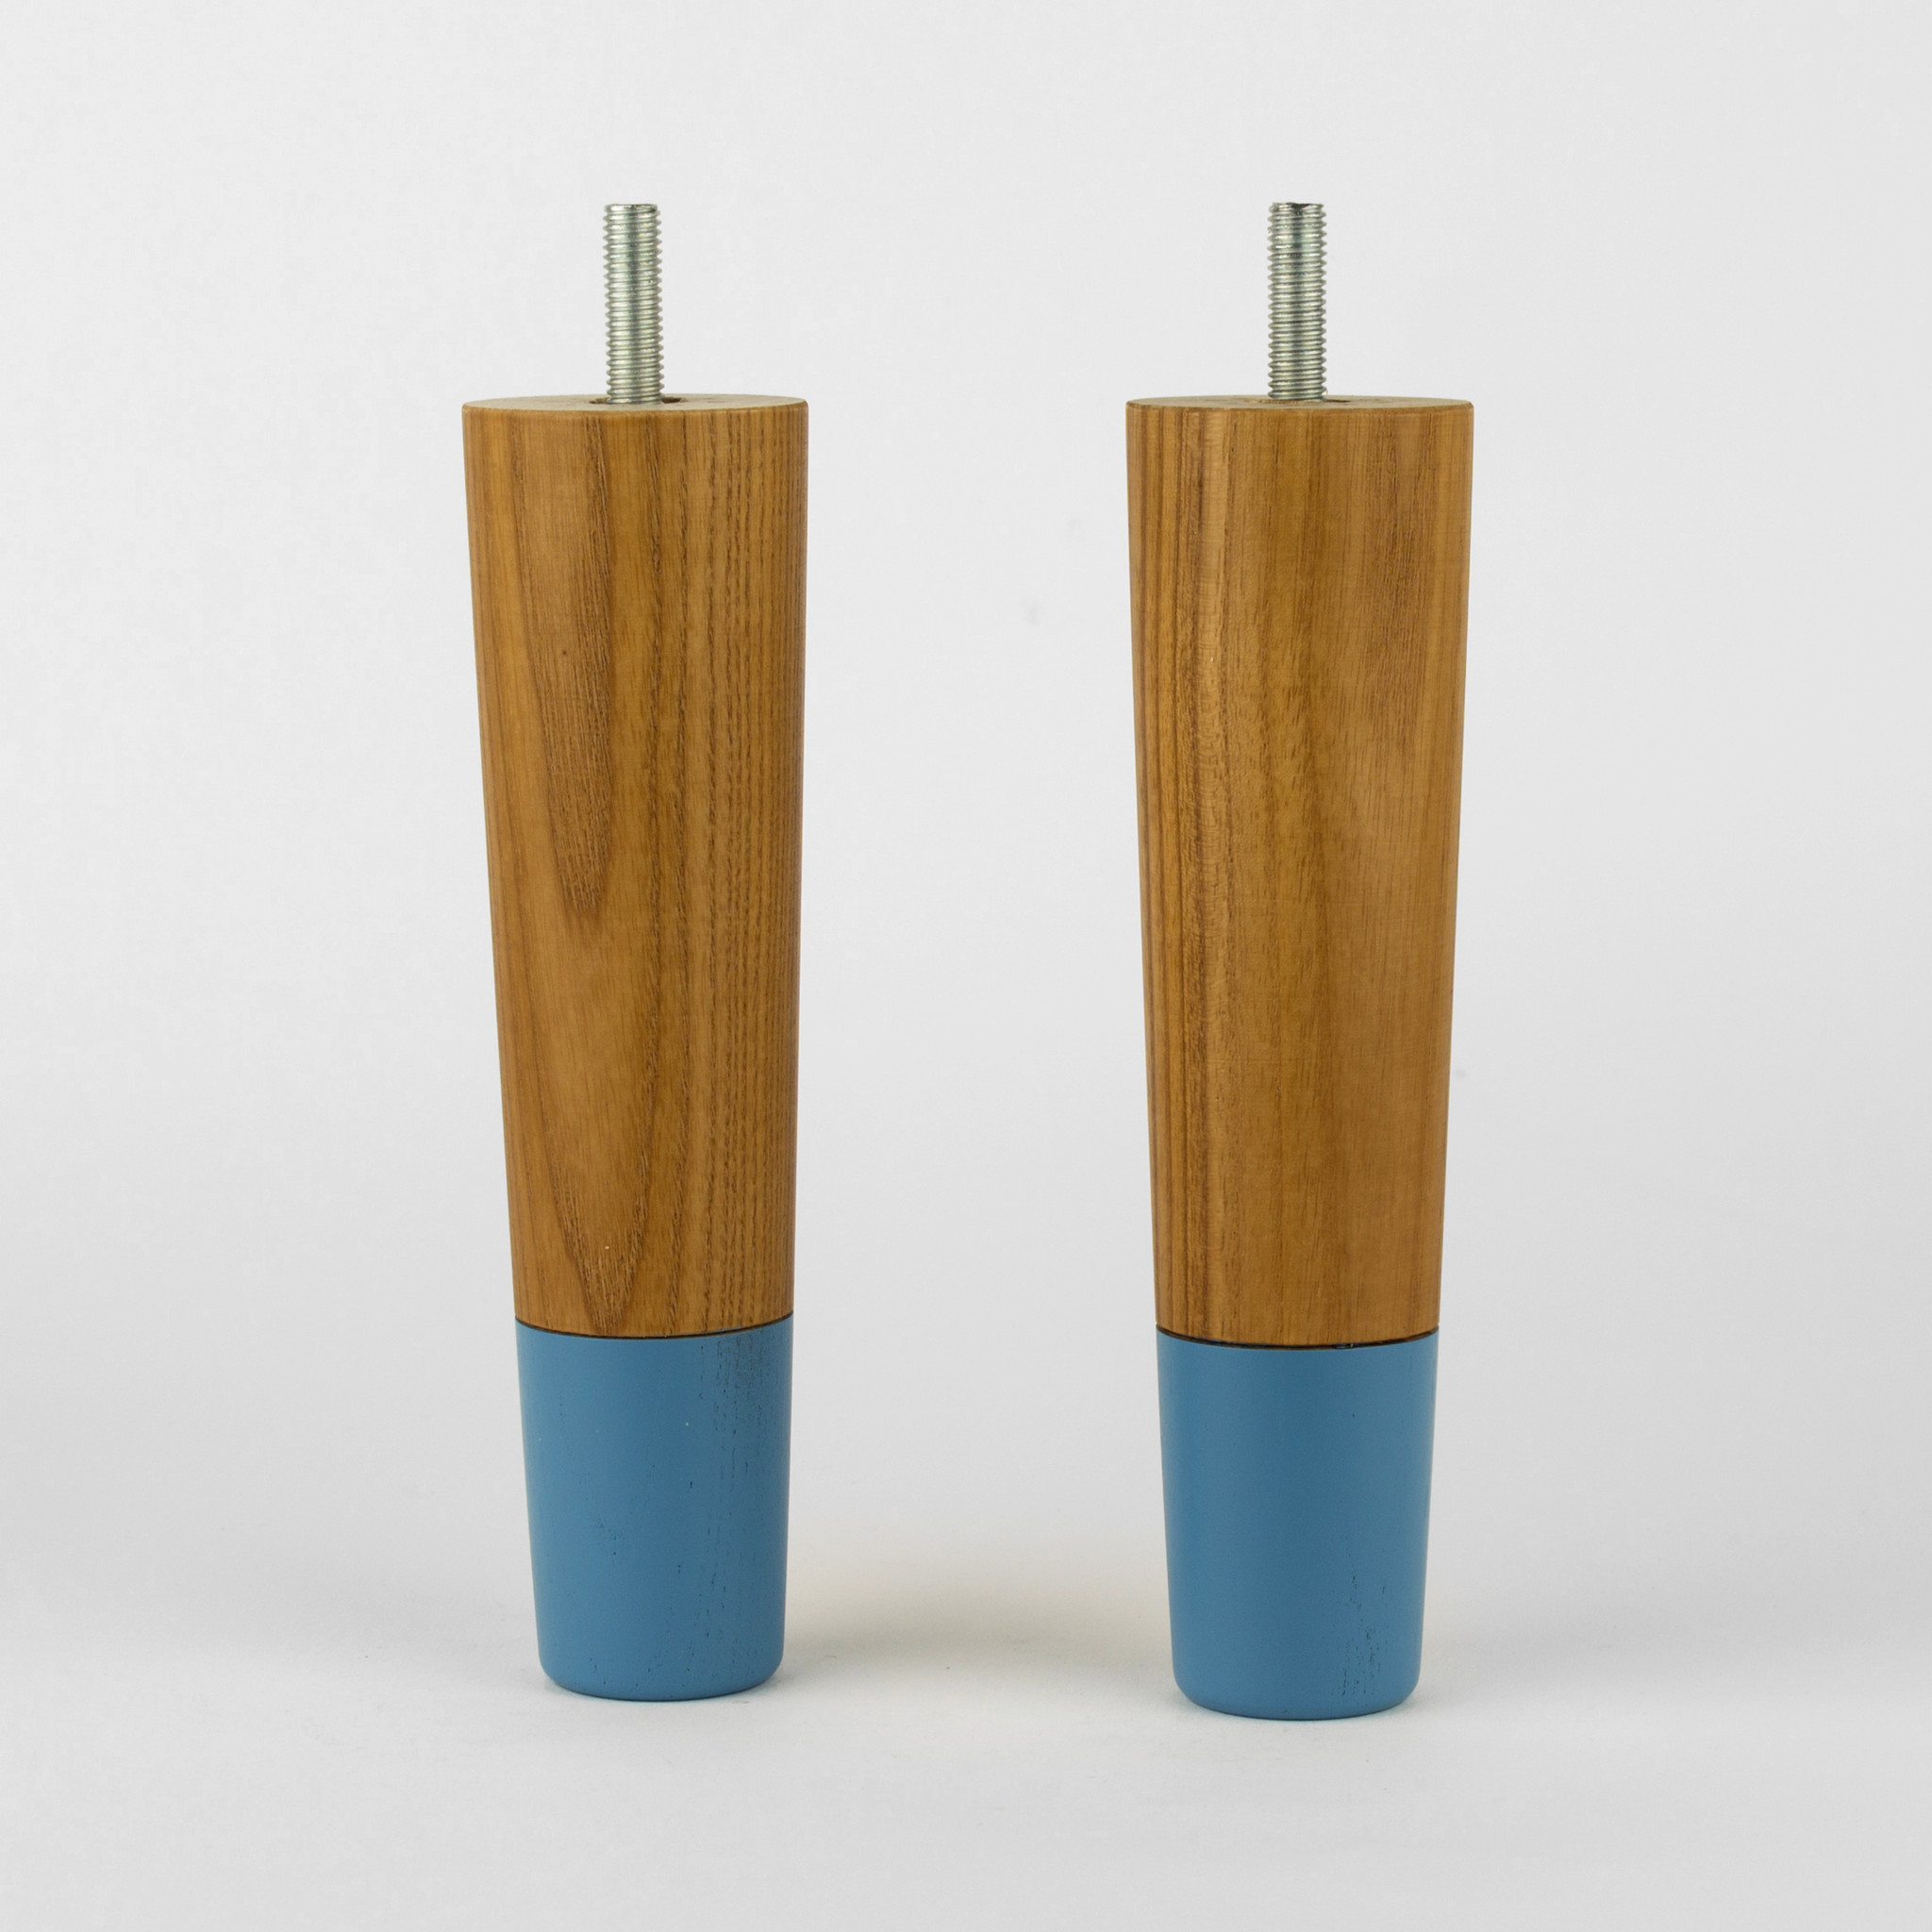 Carl 170 möbelben 4-pack teak blue Prettypegs